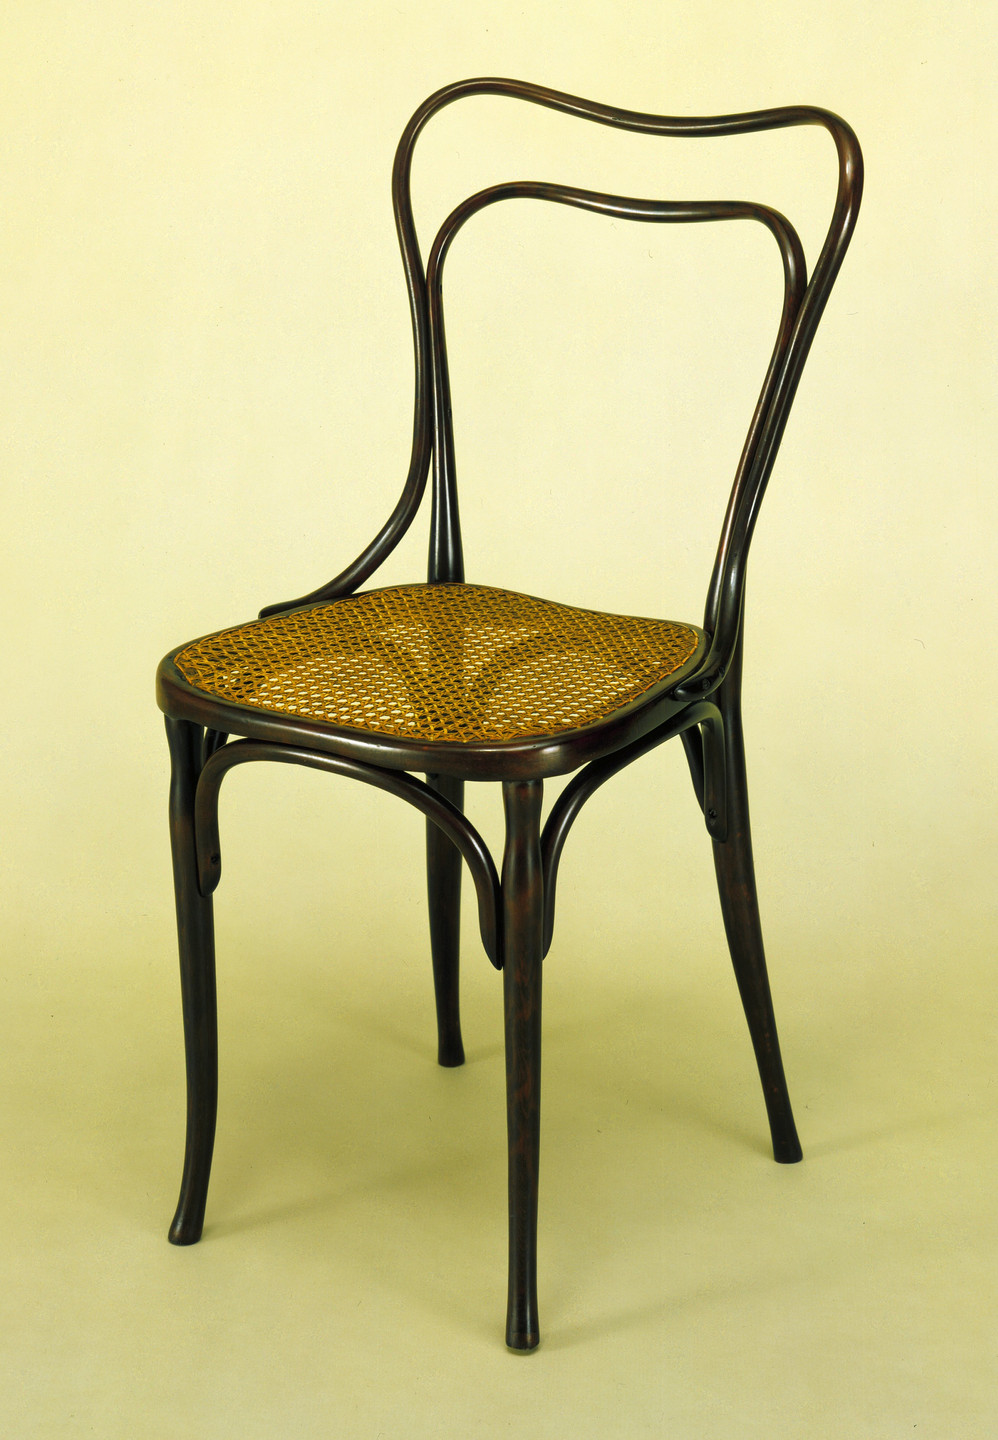 Adolph Loos, J. & J. Kohn, Vienna. Side Chair. c. 1898